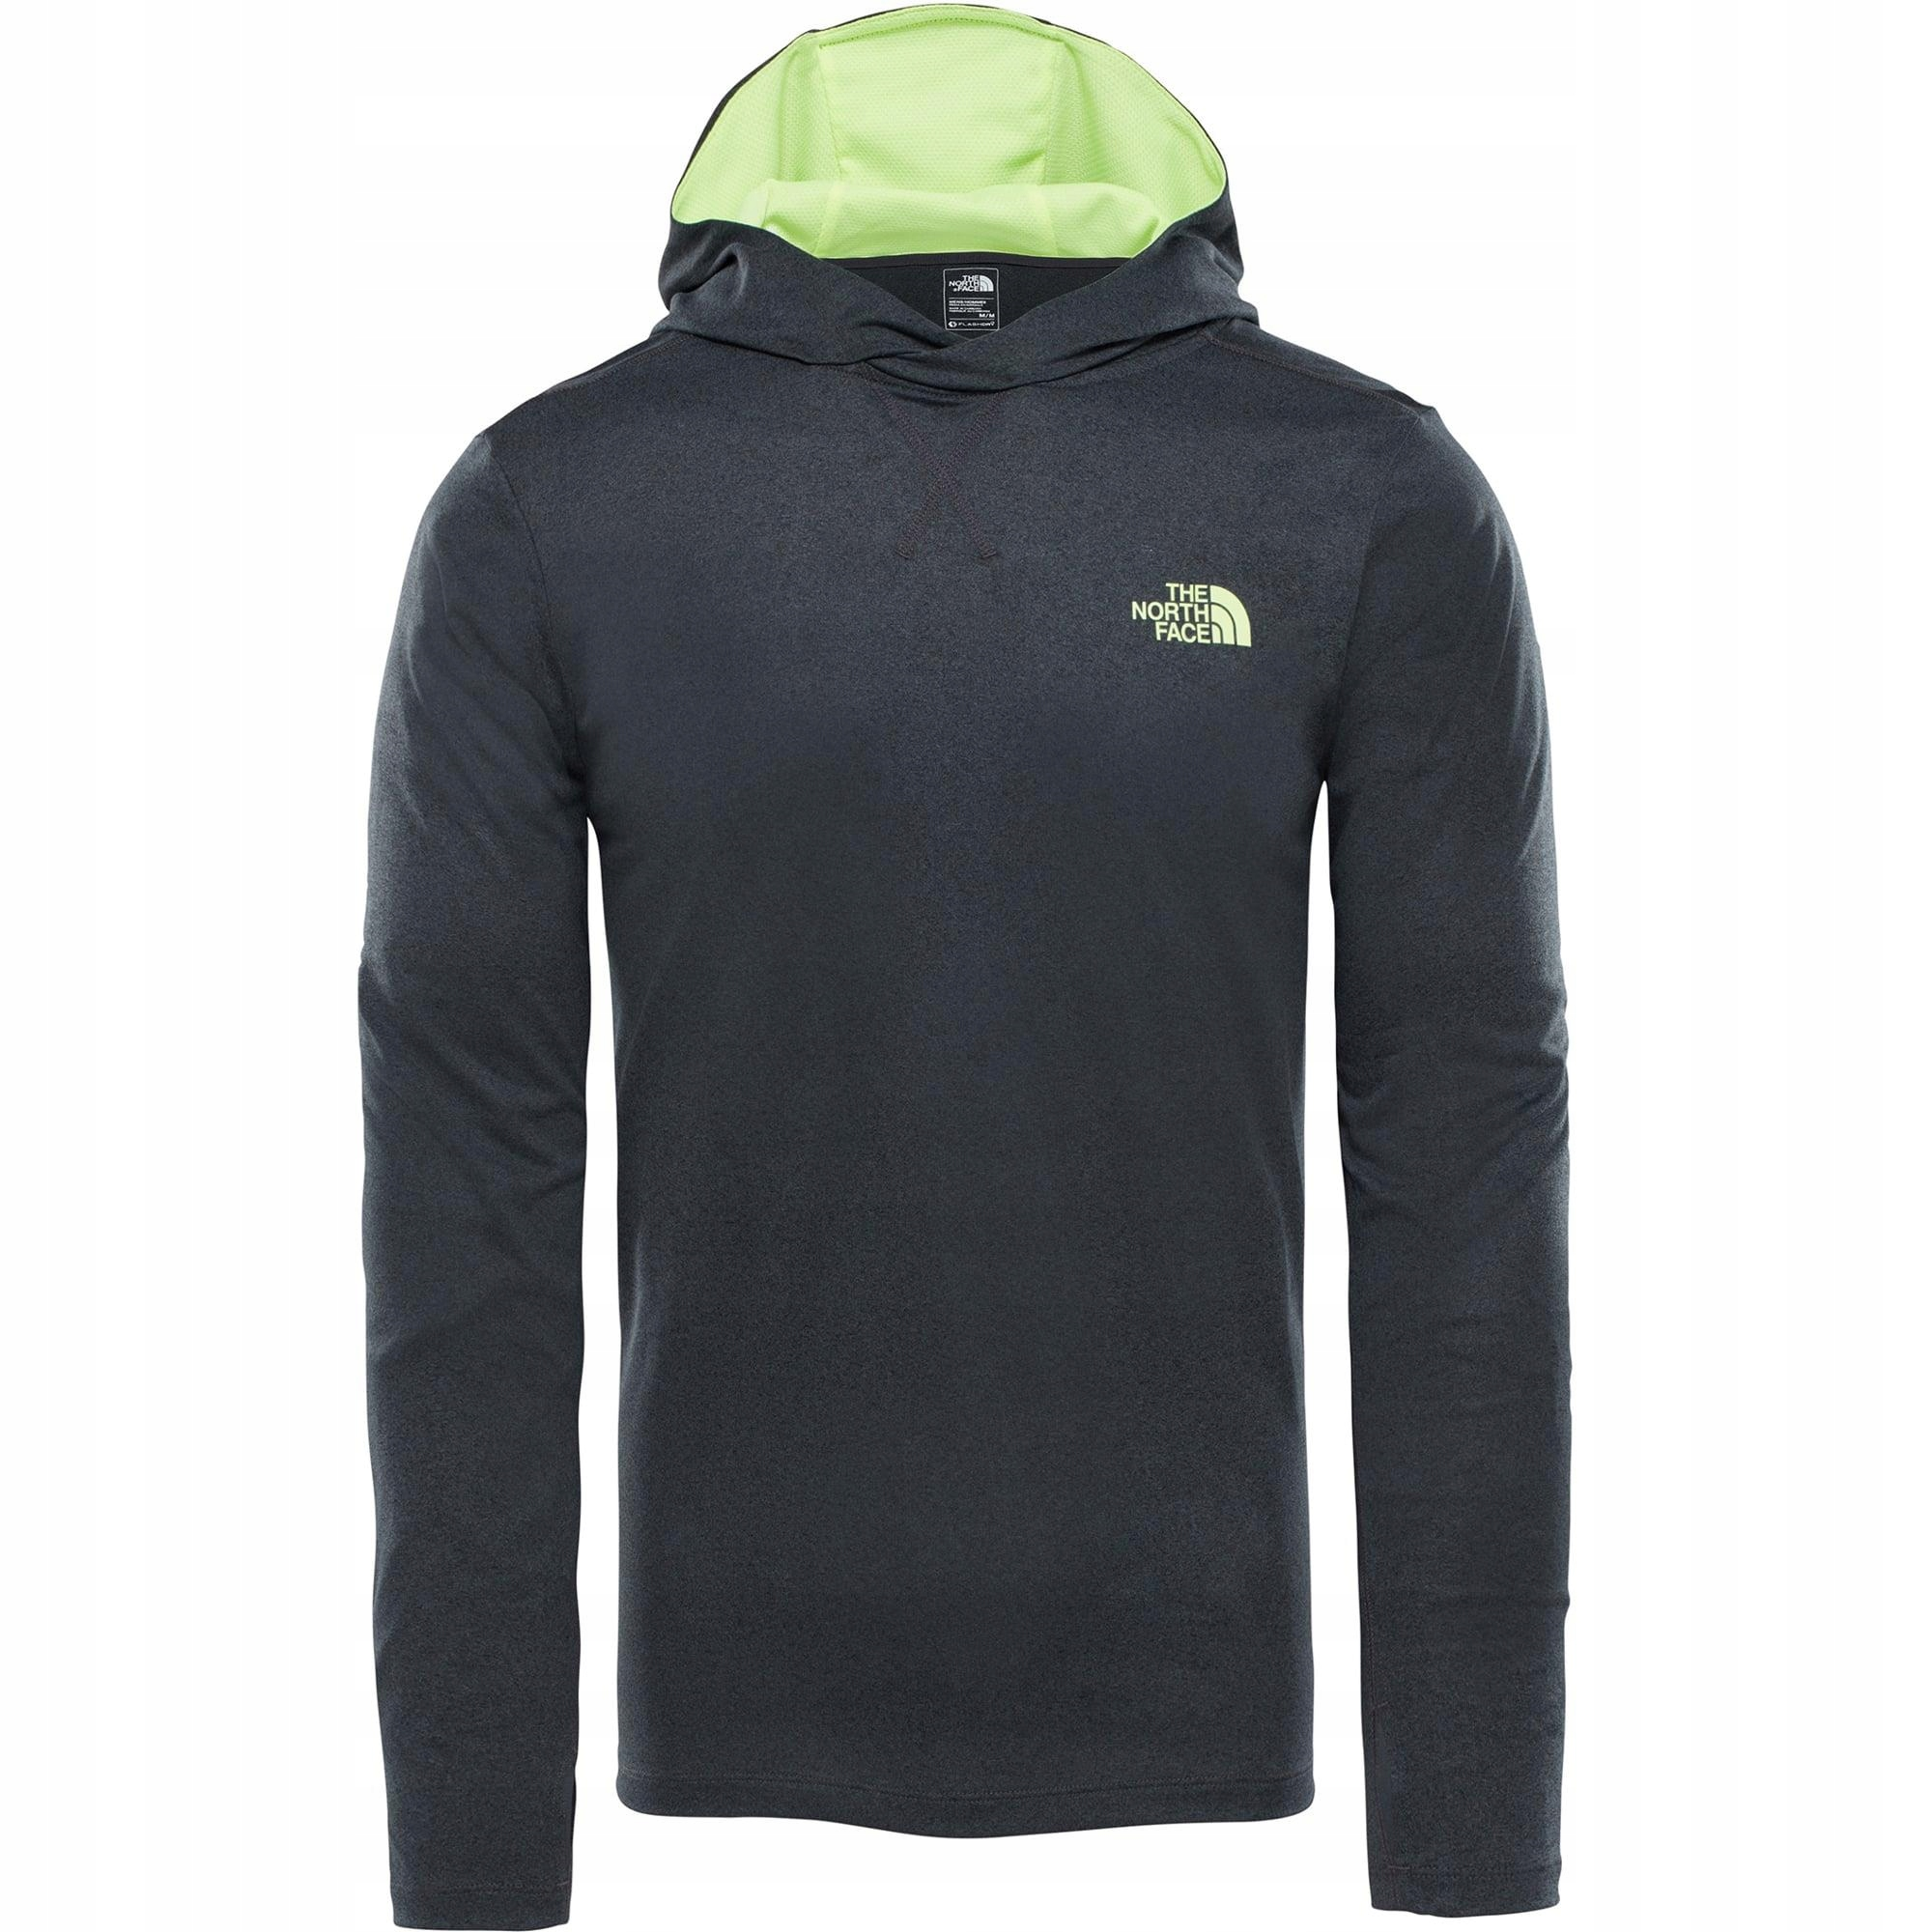 BLUZA Z KAPTUREM THE NORTH FACE REACTOR r S